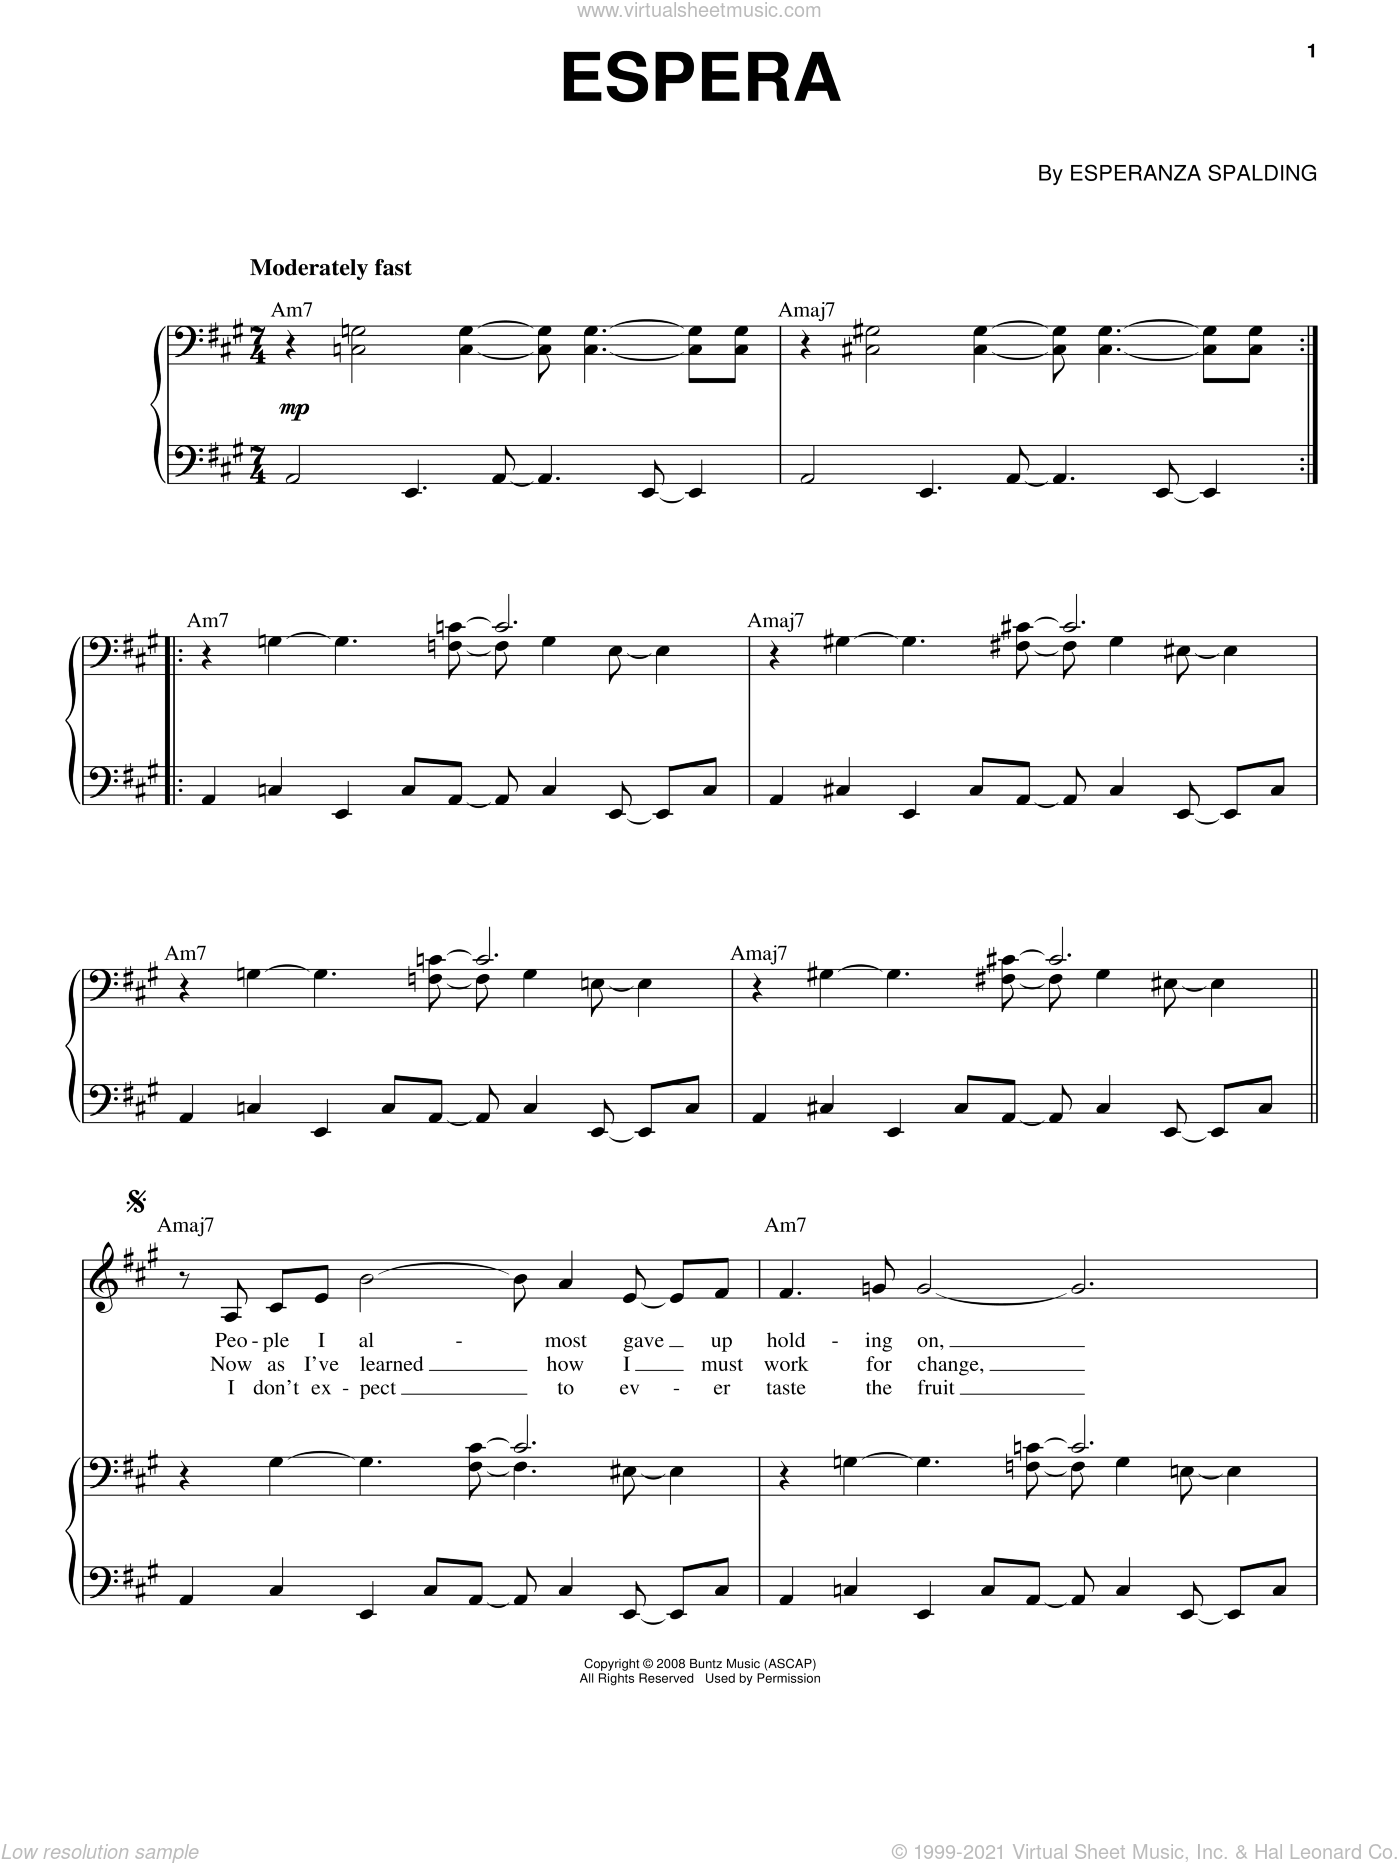 Espera sheet music for voice and piano by Esperanza Spalding